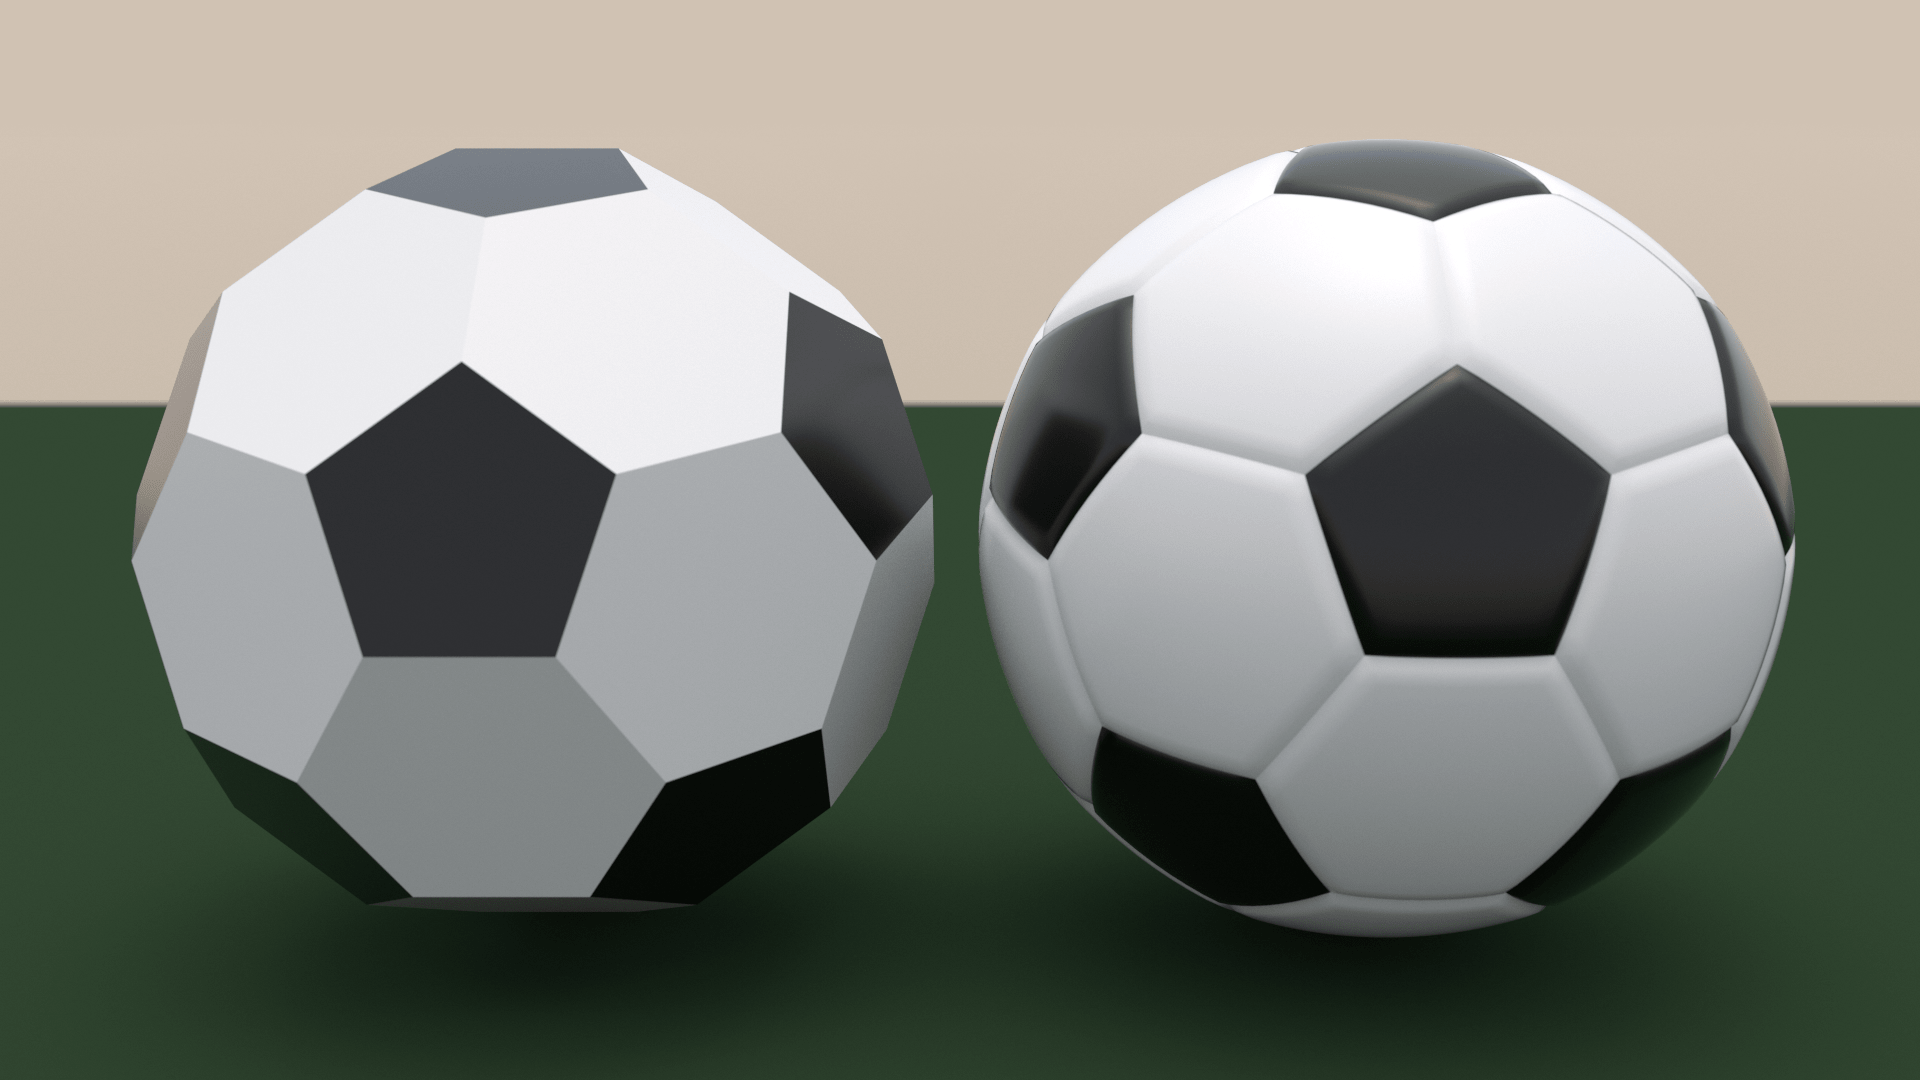 Comparison between a truncated icosahedron and a soccer ball